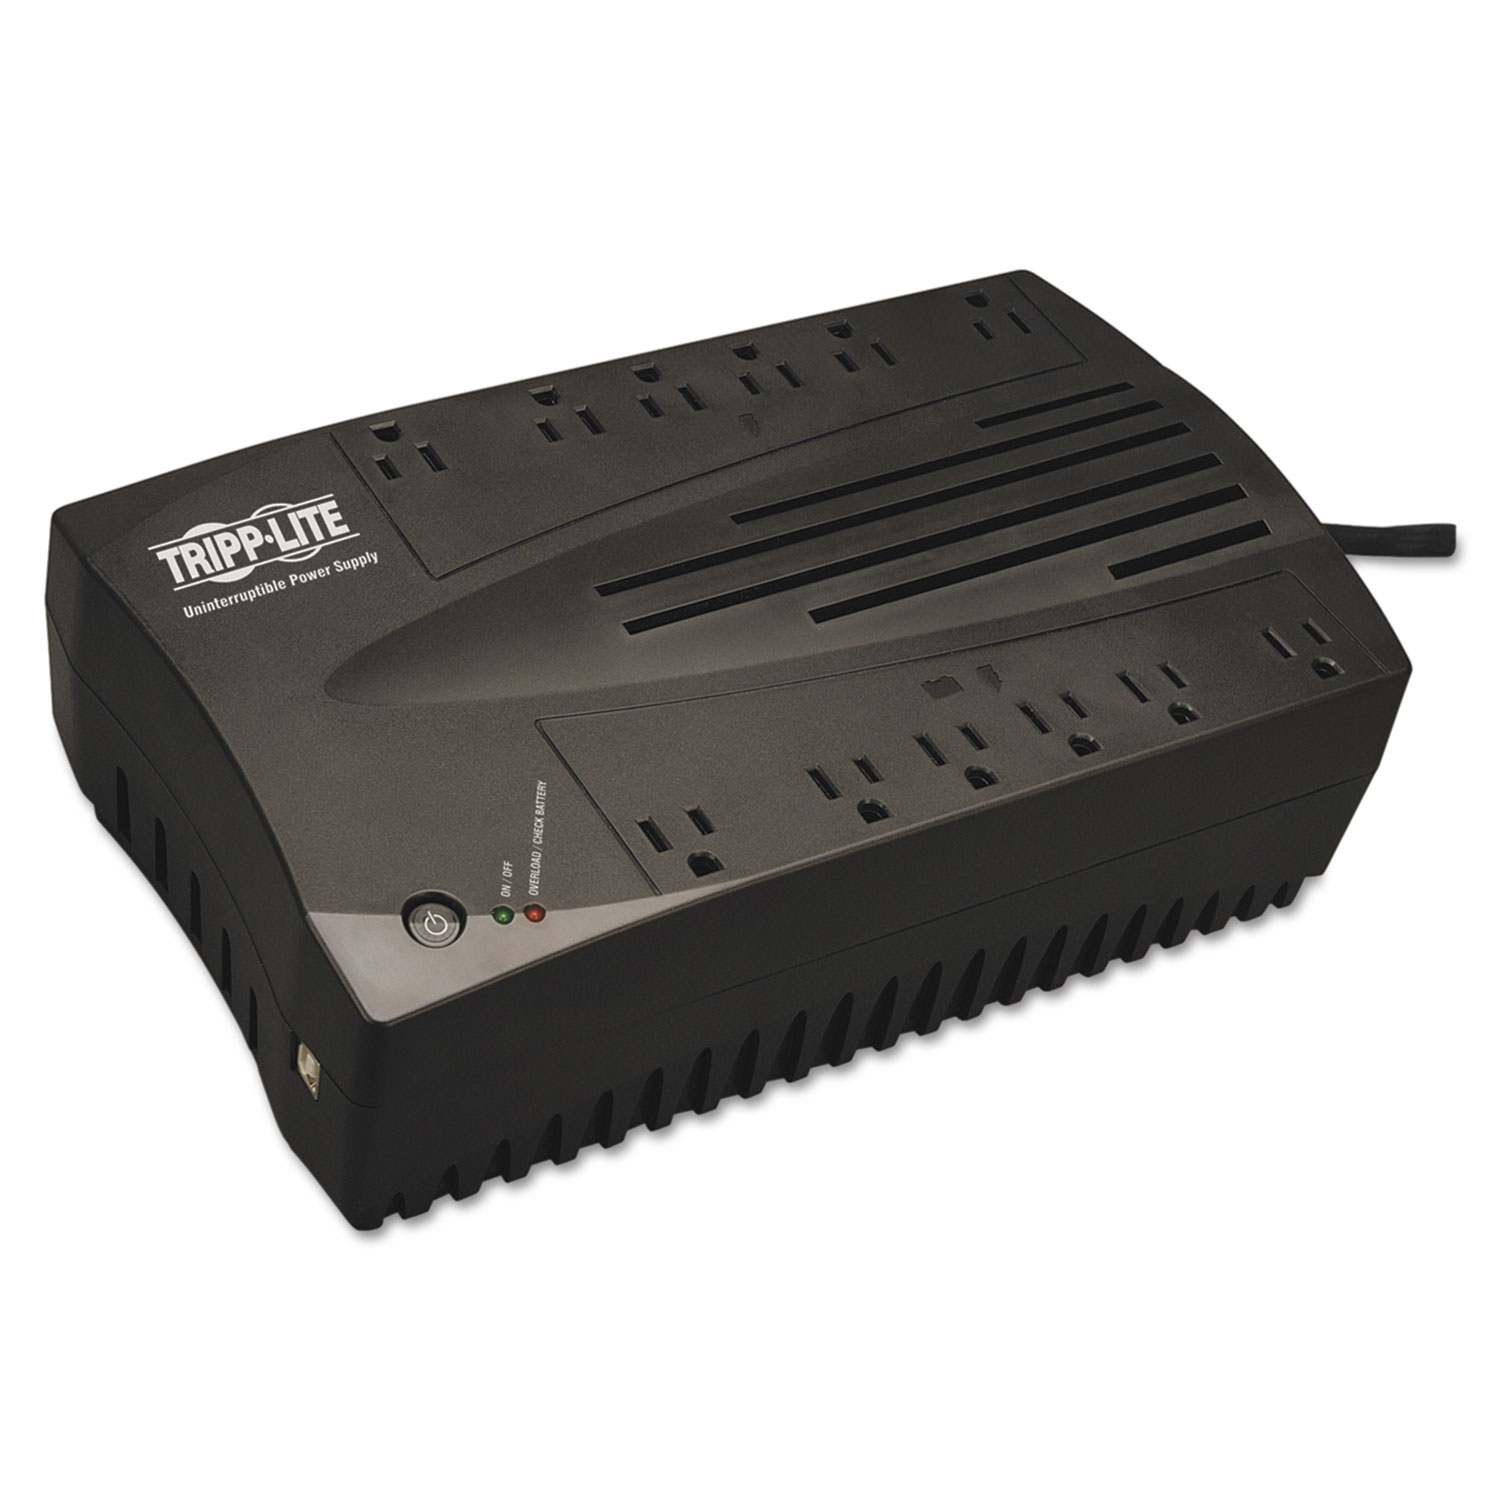 AVR Series Ultra-Compact Line-Interactive UPS, USB, 12 Outlets, 900 VA, 420 J